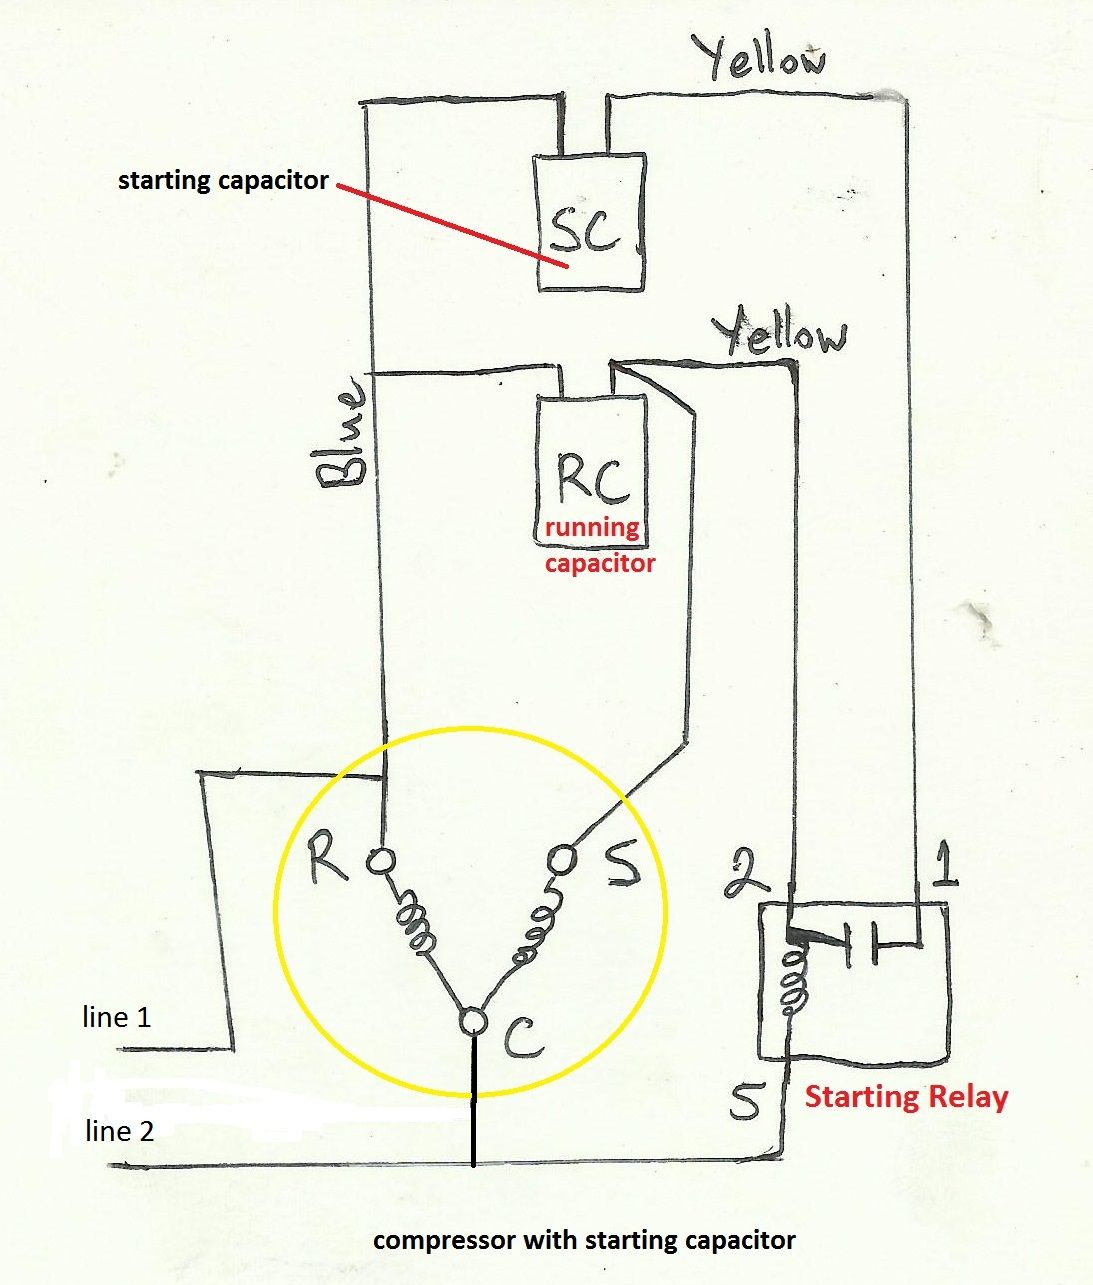 electric motor capacitor wiring diagram Collection-Air pressor Capacitor Wiring Diagram Before you call a AC repair man visit my blog for some tips on how to save thousands in ac repairs 14-k